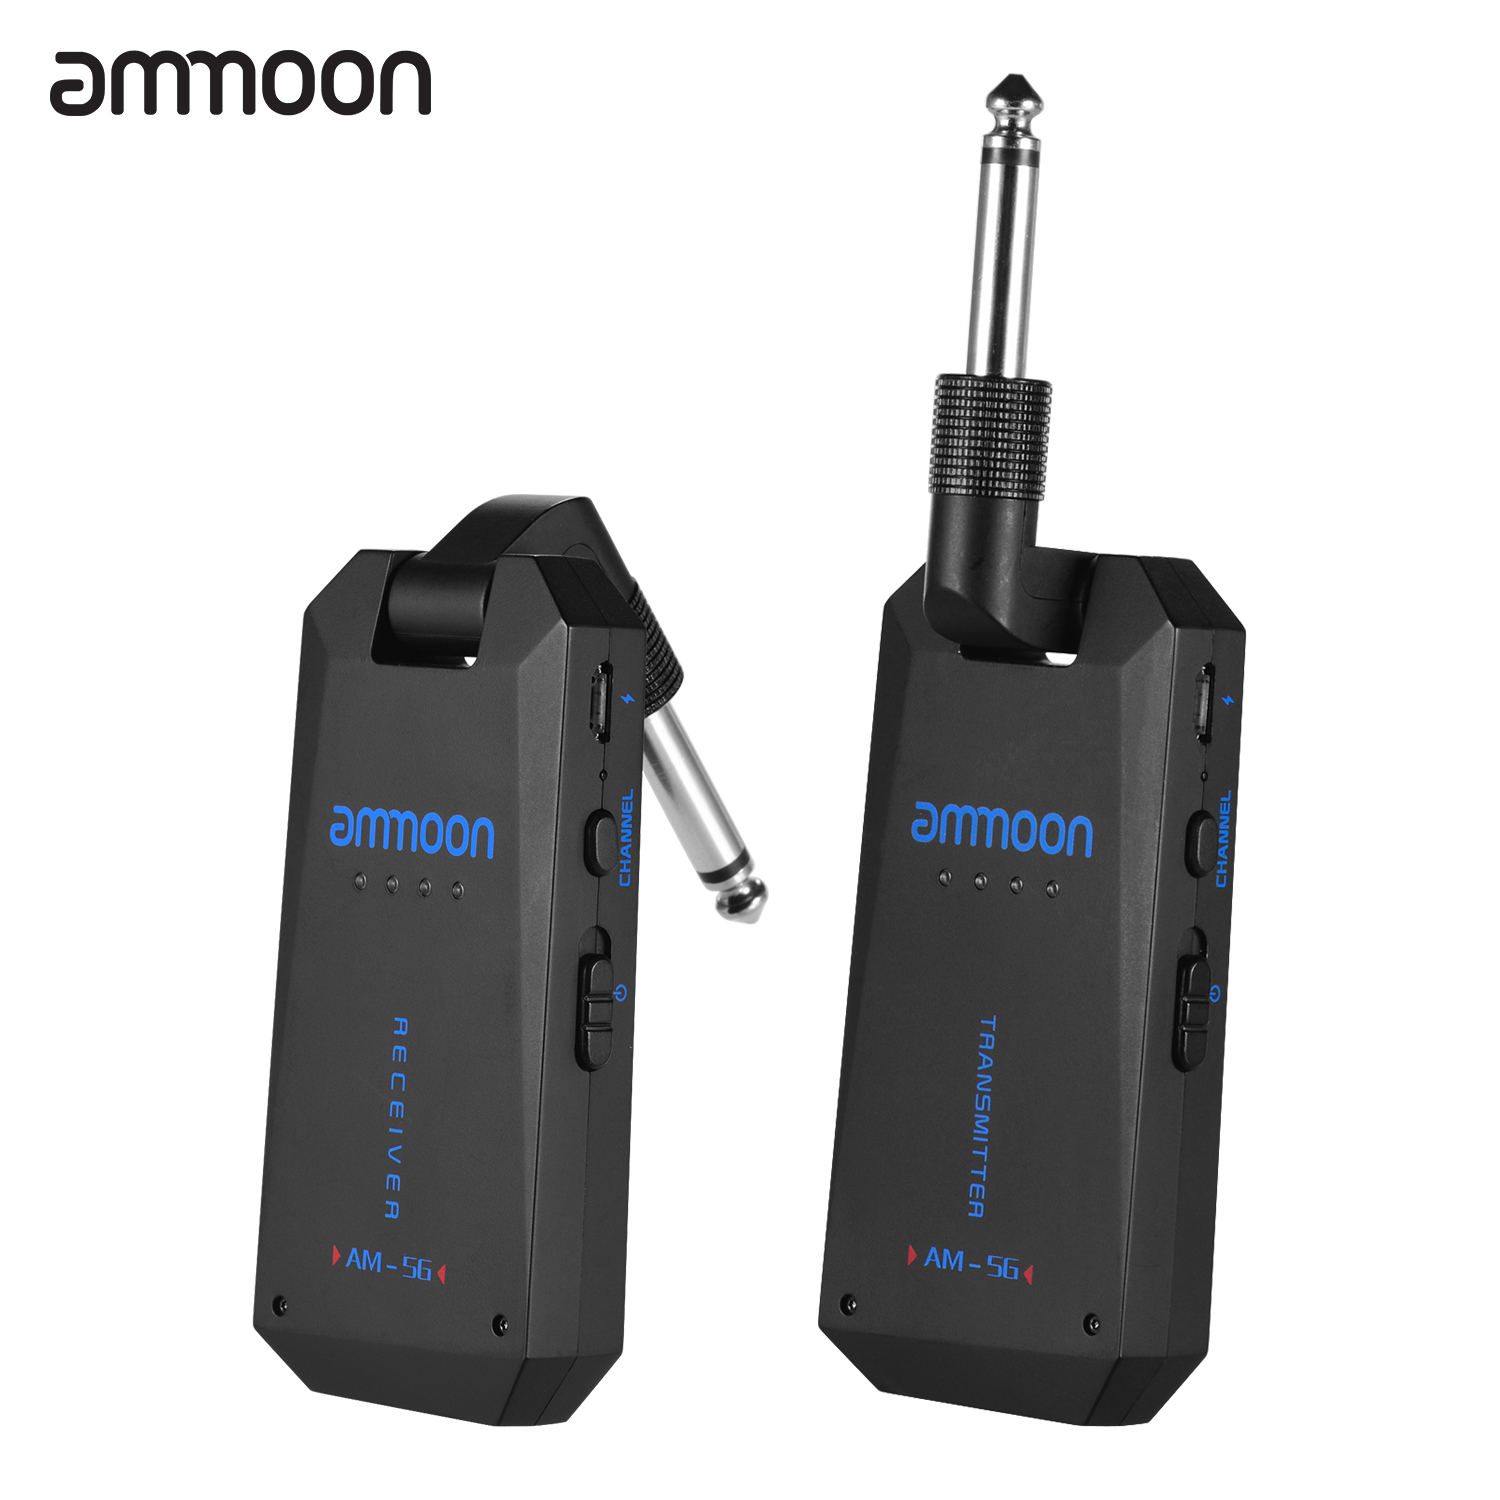 ammoon Wireless Guitar Systems AM-5G Wireless 5.8G Guitar System Rechargeable Audio Transmitter and Receiver ISM Band for Electric Bass Guitars Amplifier Accessories